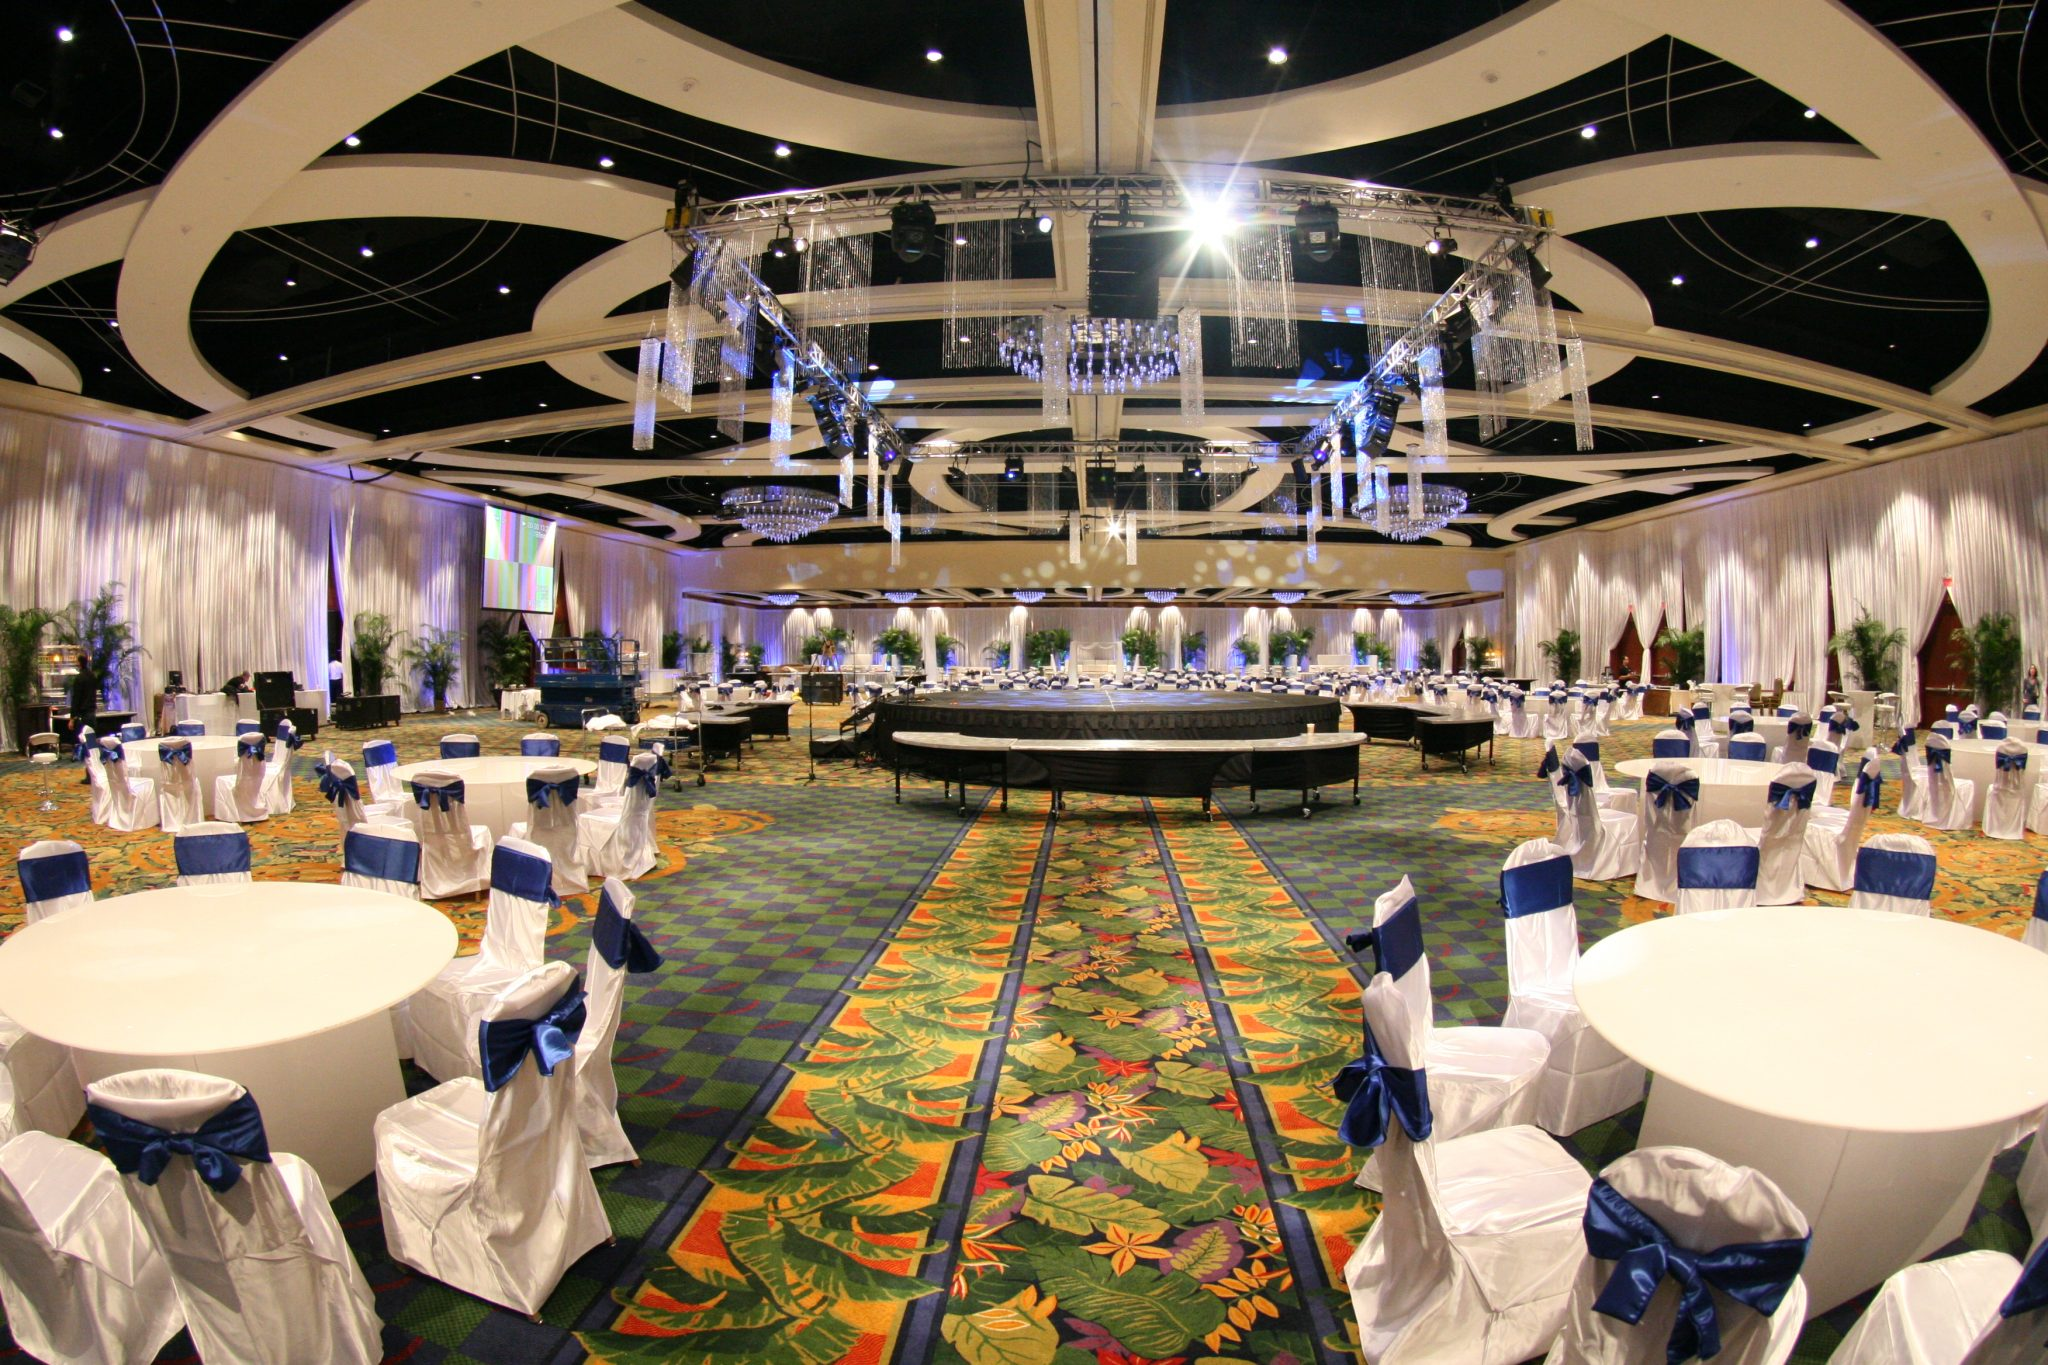 WHEN WE MEET AGAIN™ – Embracing the Future of Meetings & Event Space Design